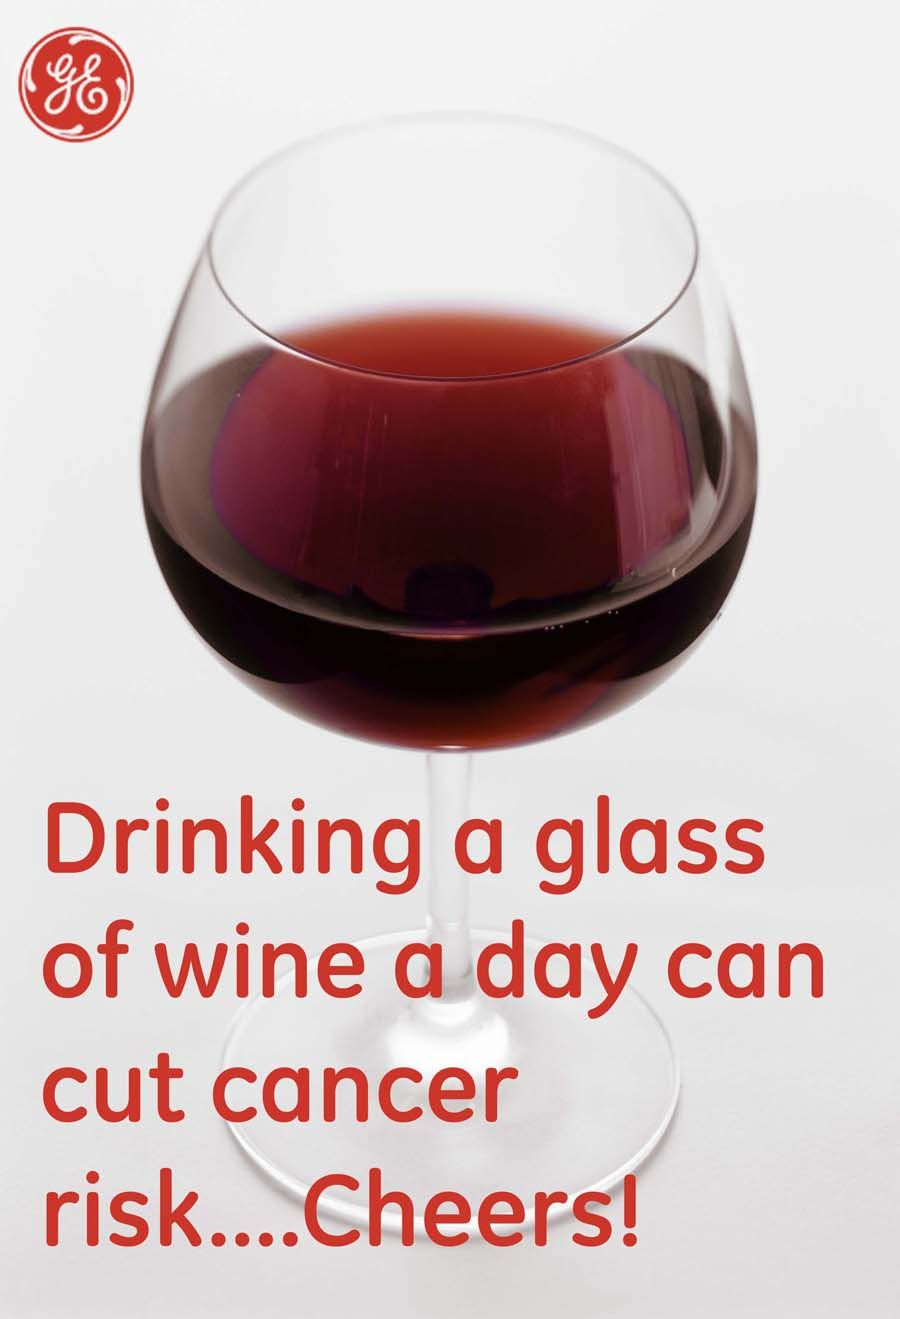 Pin By Arlien Yustika On Cancer Pintherapy Wine Humor Cancer Fighting Wine And Spirits